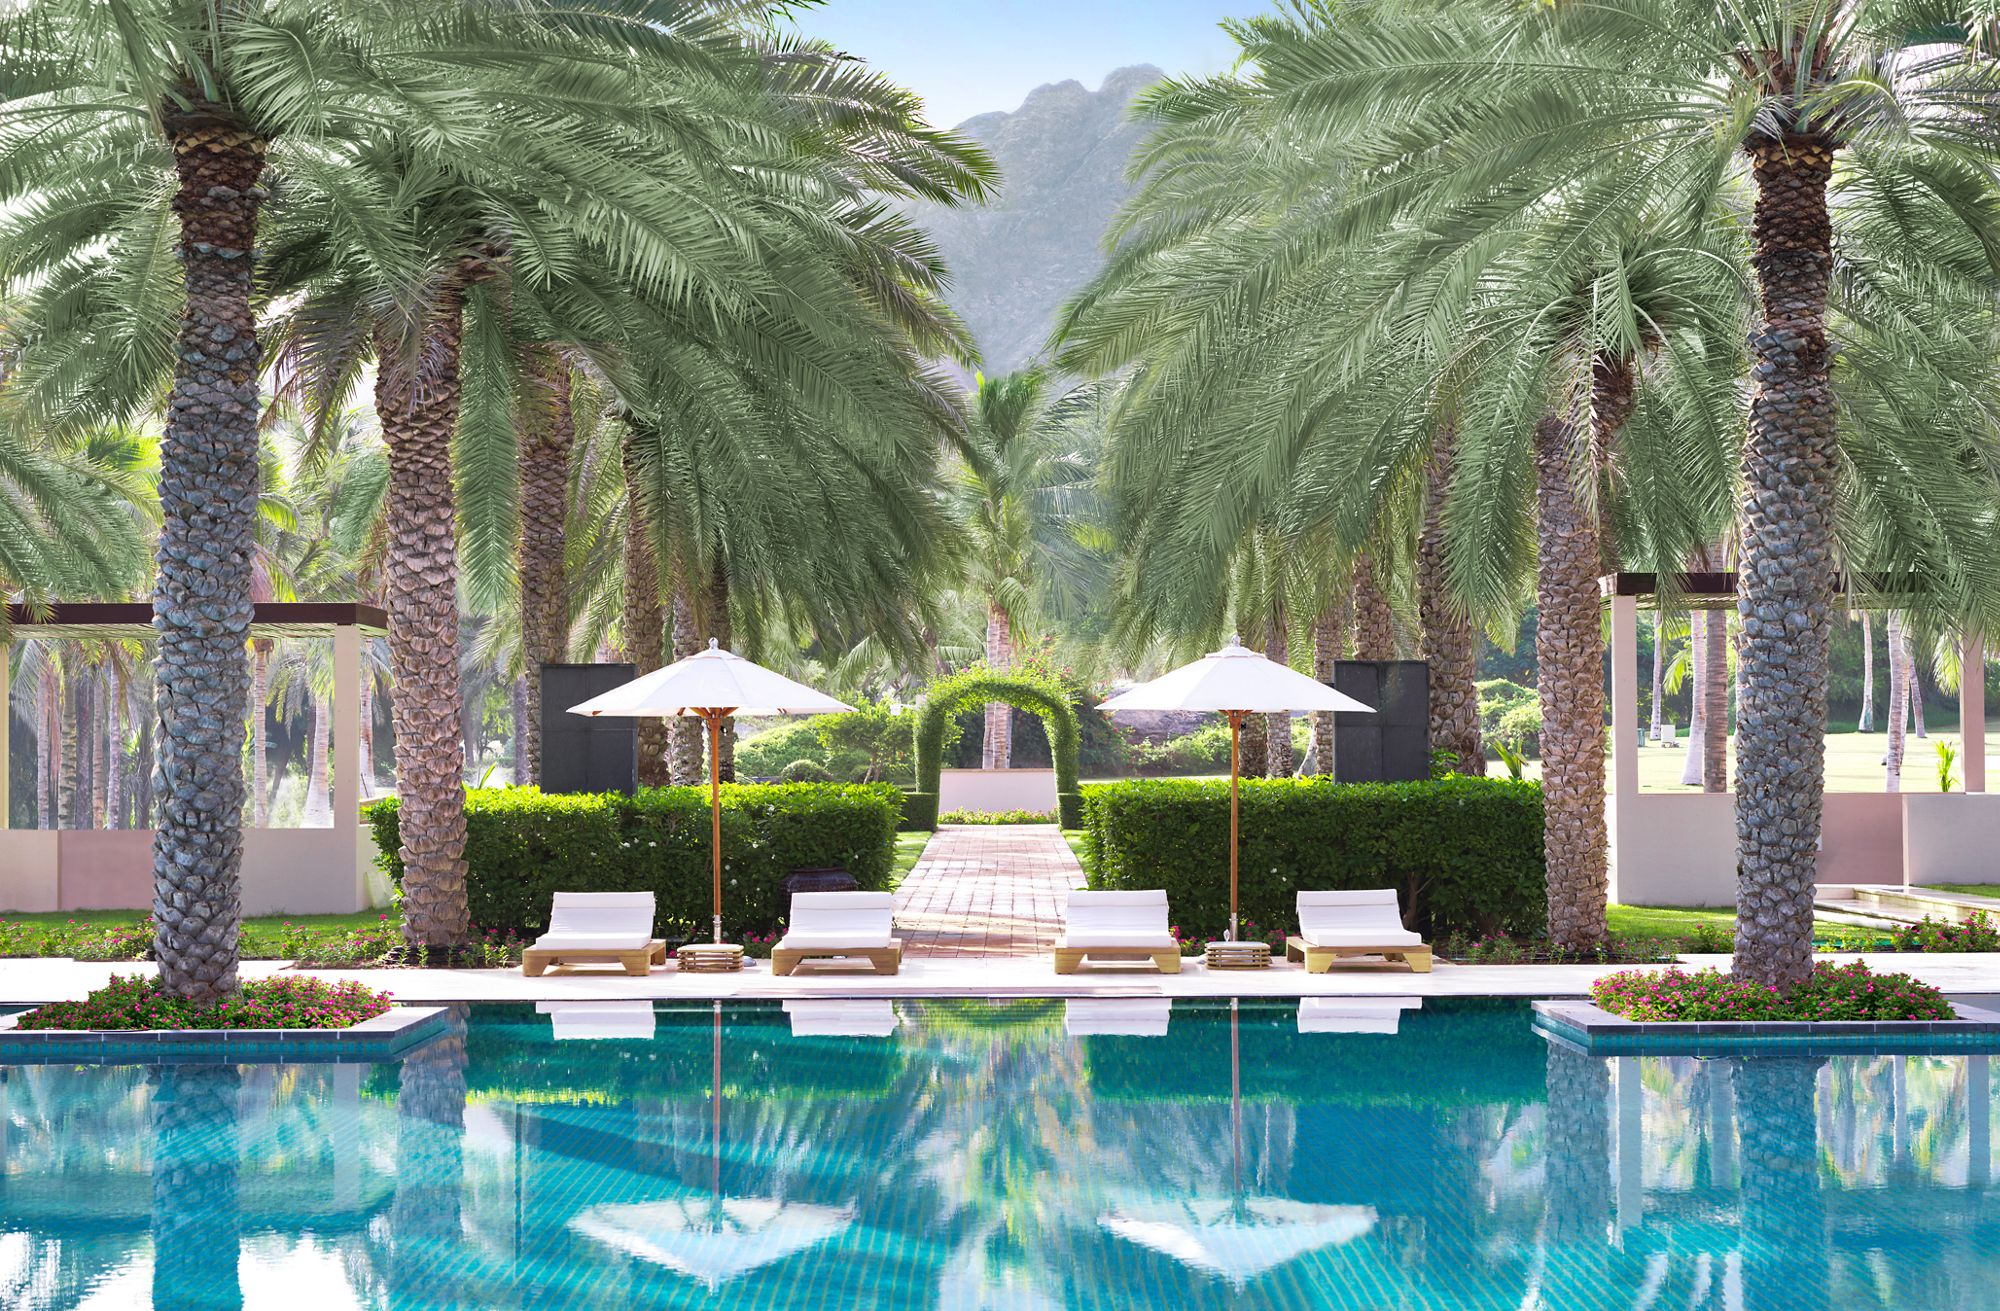 Luxury Hotels and Resorts.